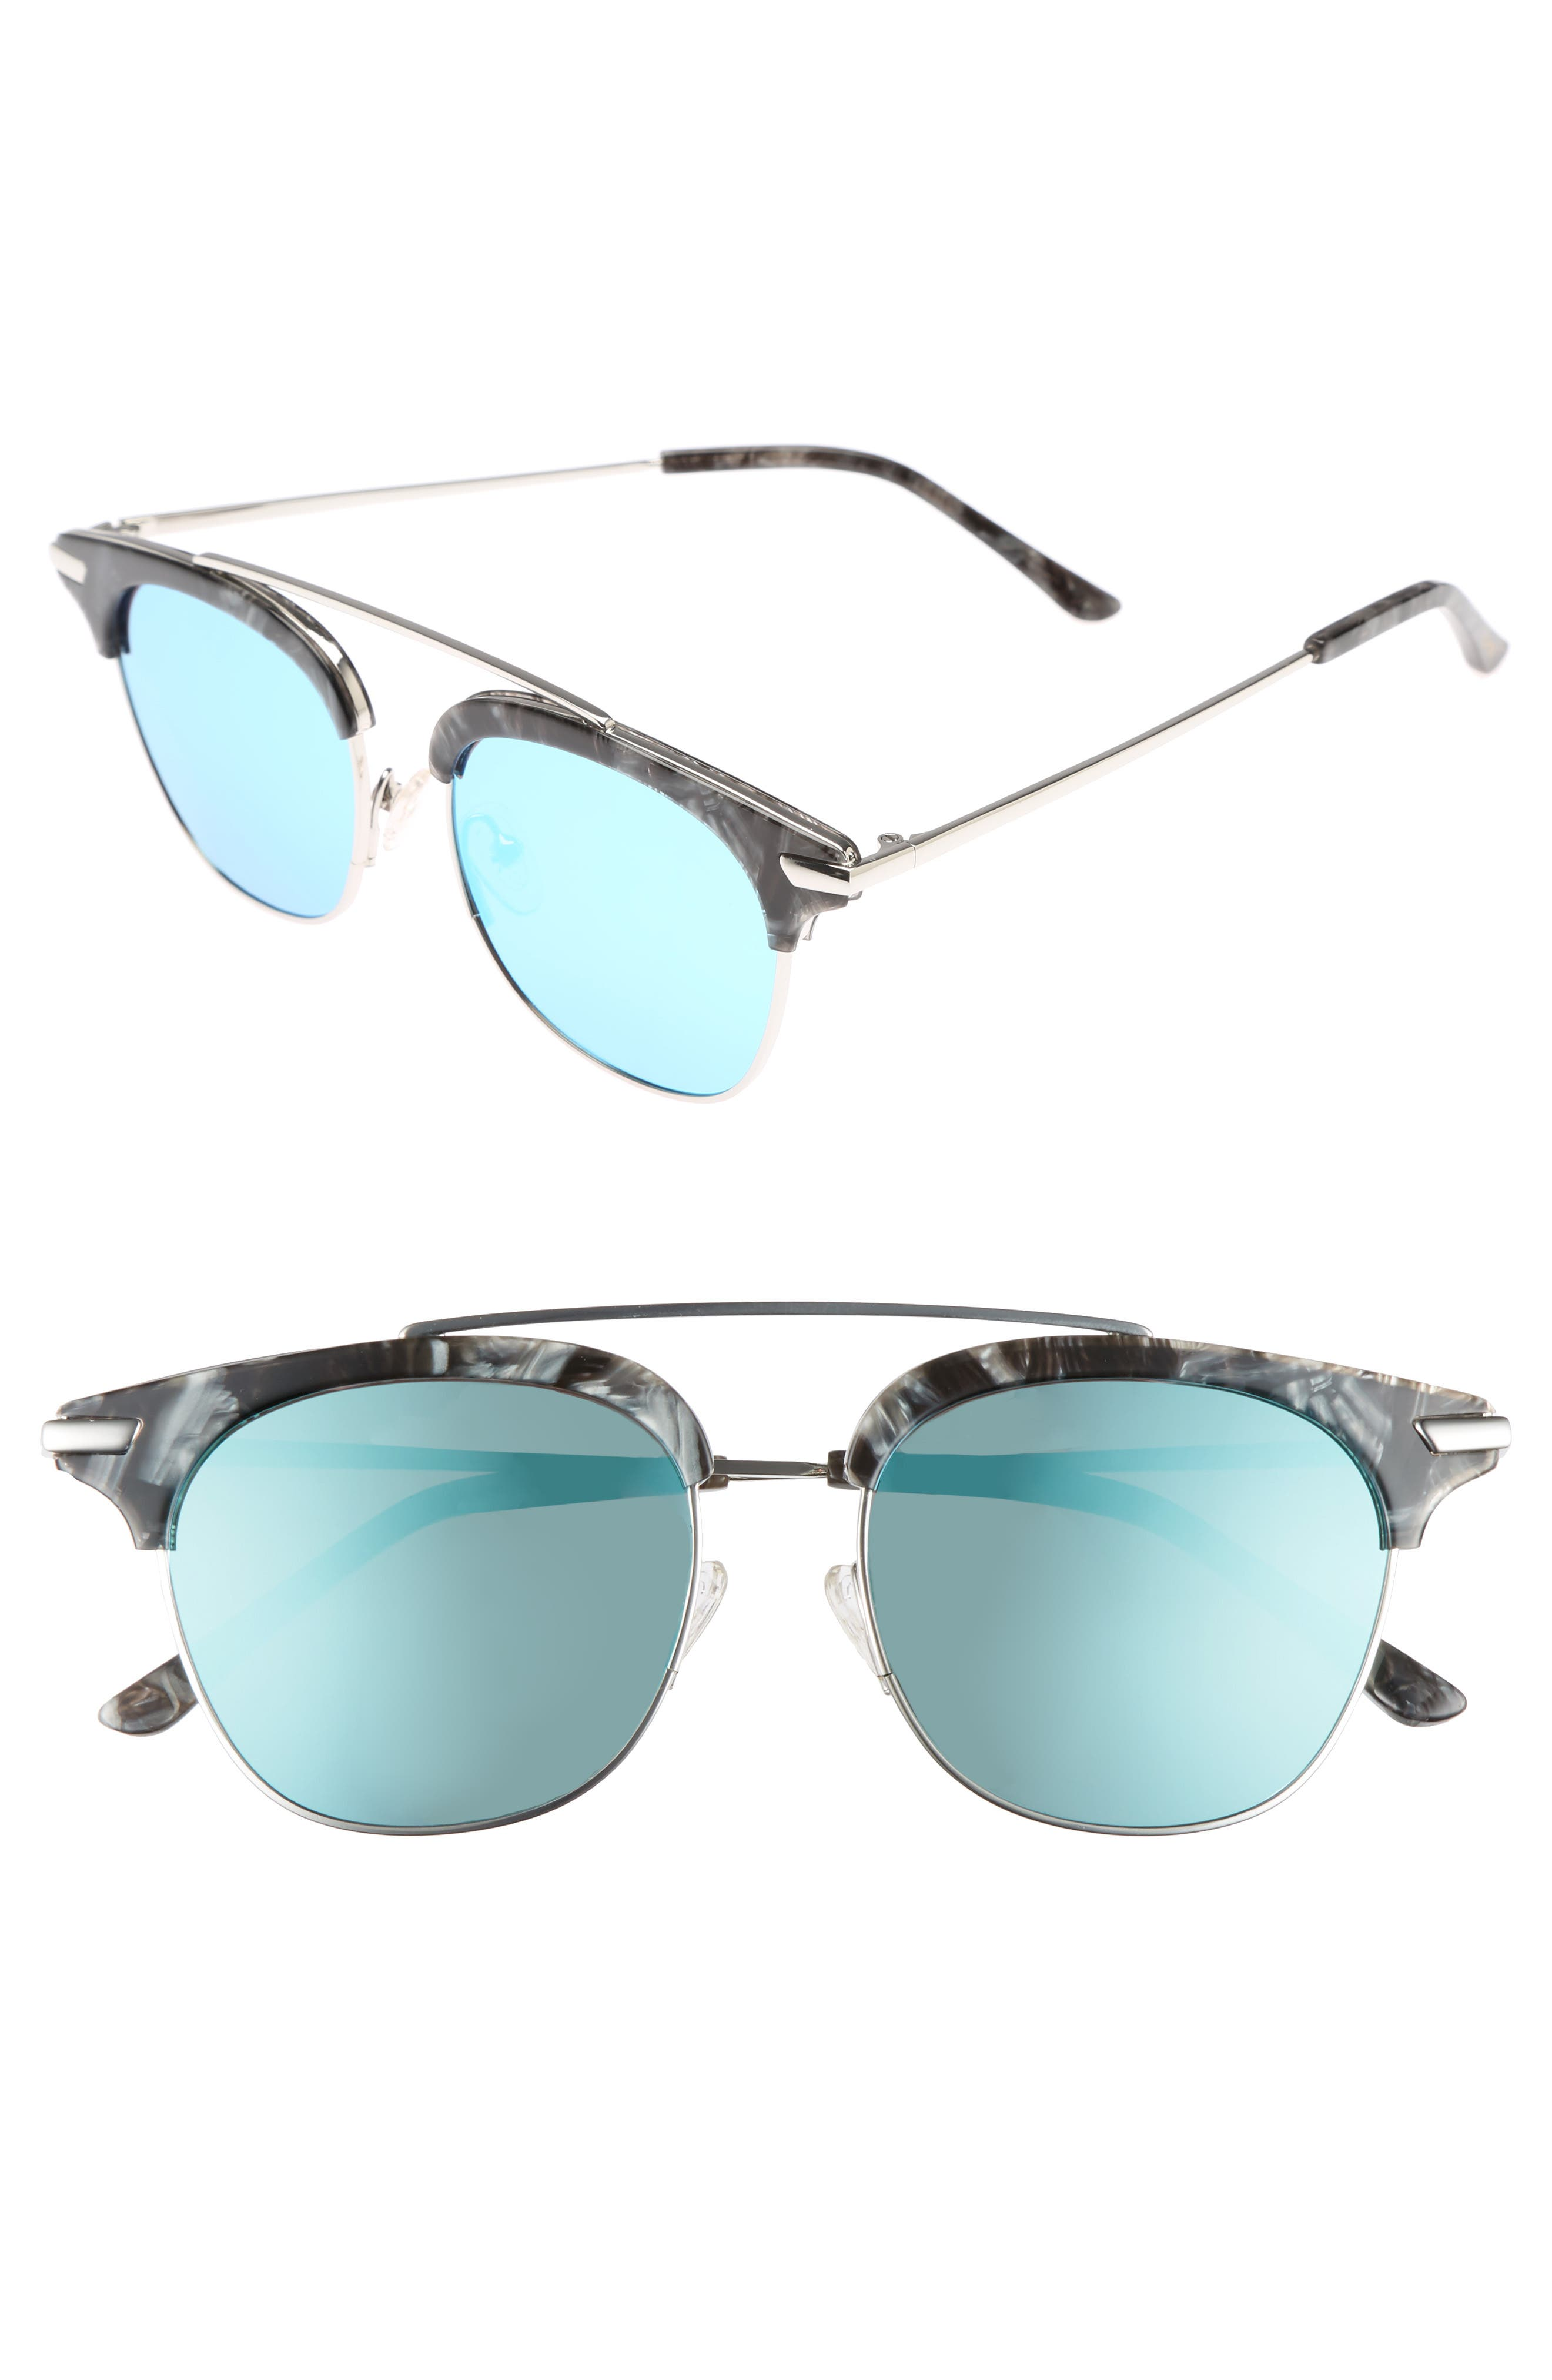 Main Image - Bonnie Clyde Midway 51mm Polarized Brow Bar Sunglasses